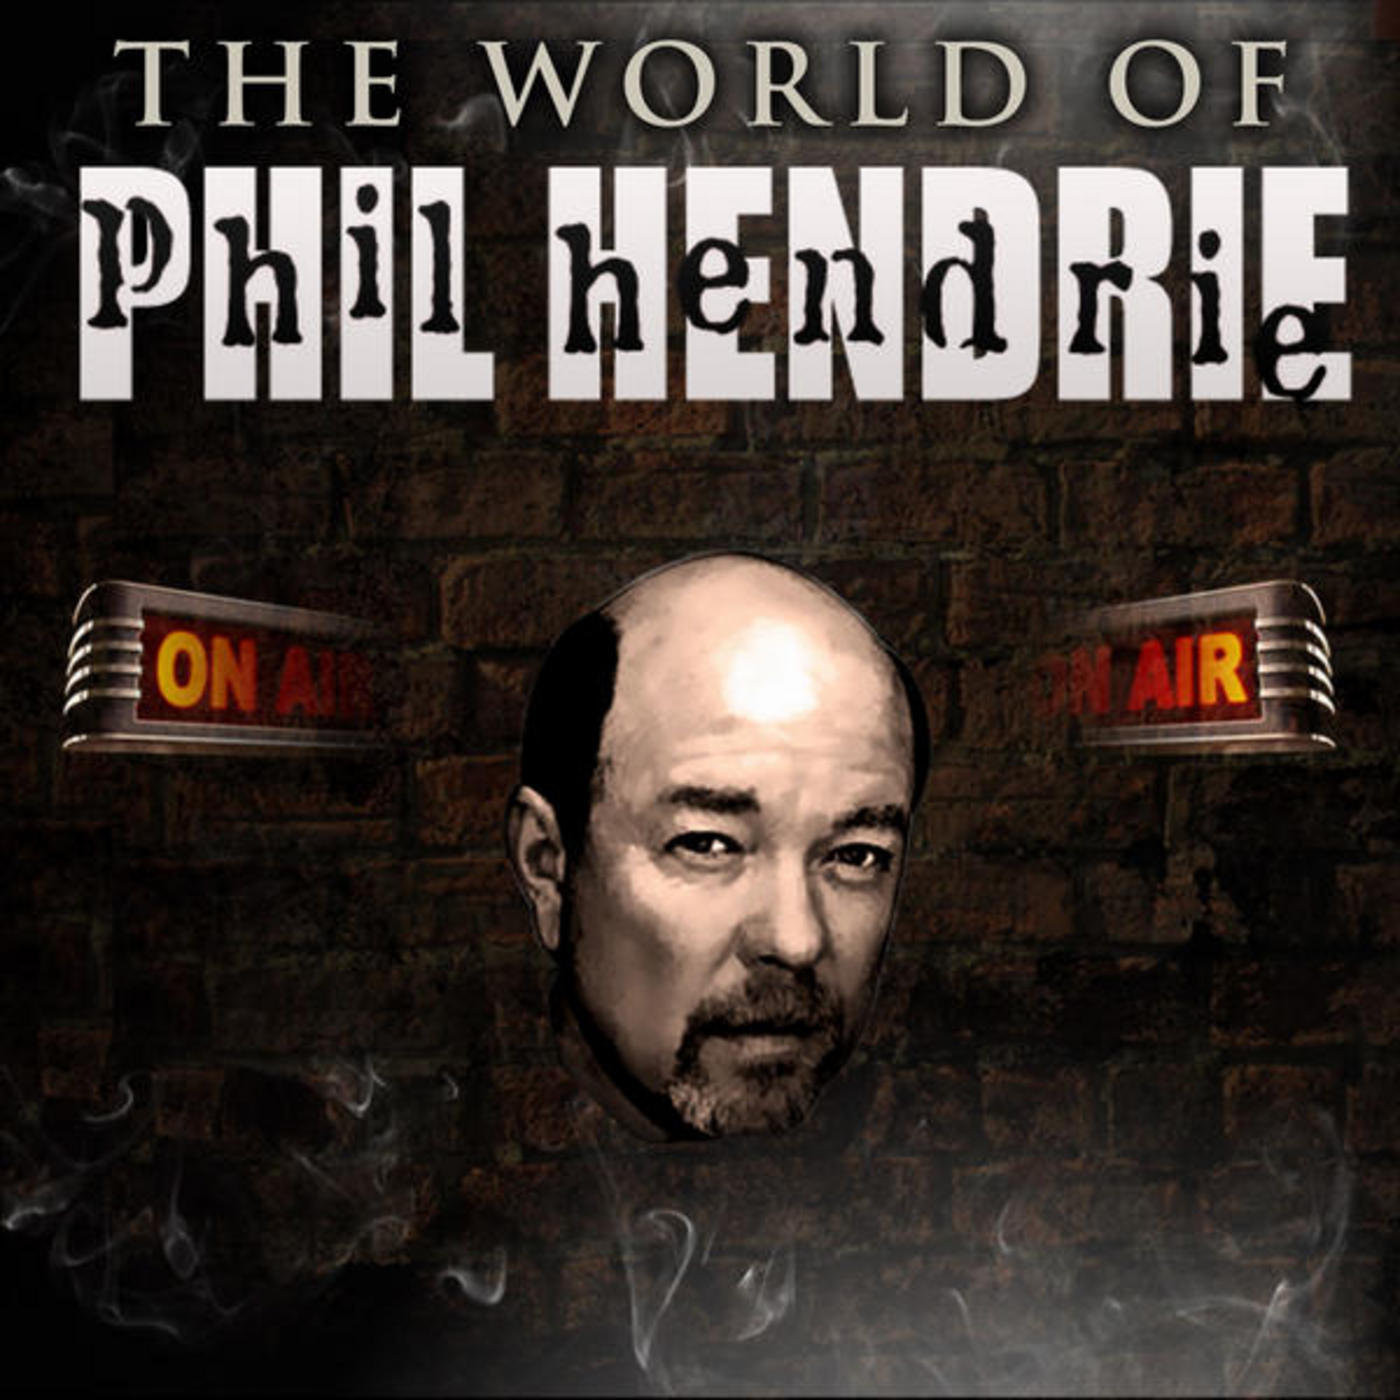 Episode #1852 The New Phil Hendrie Show